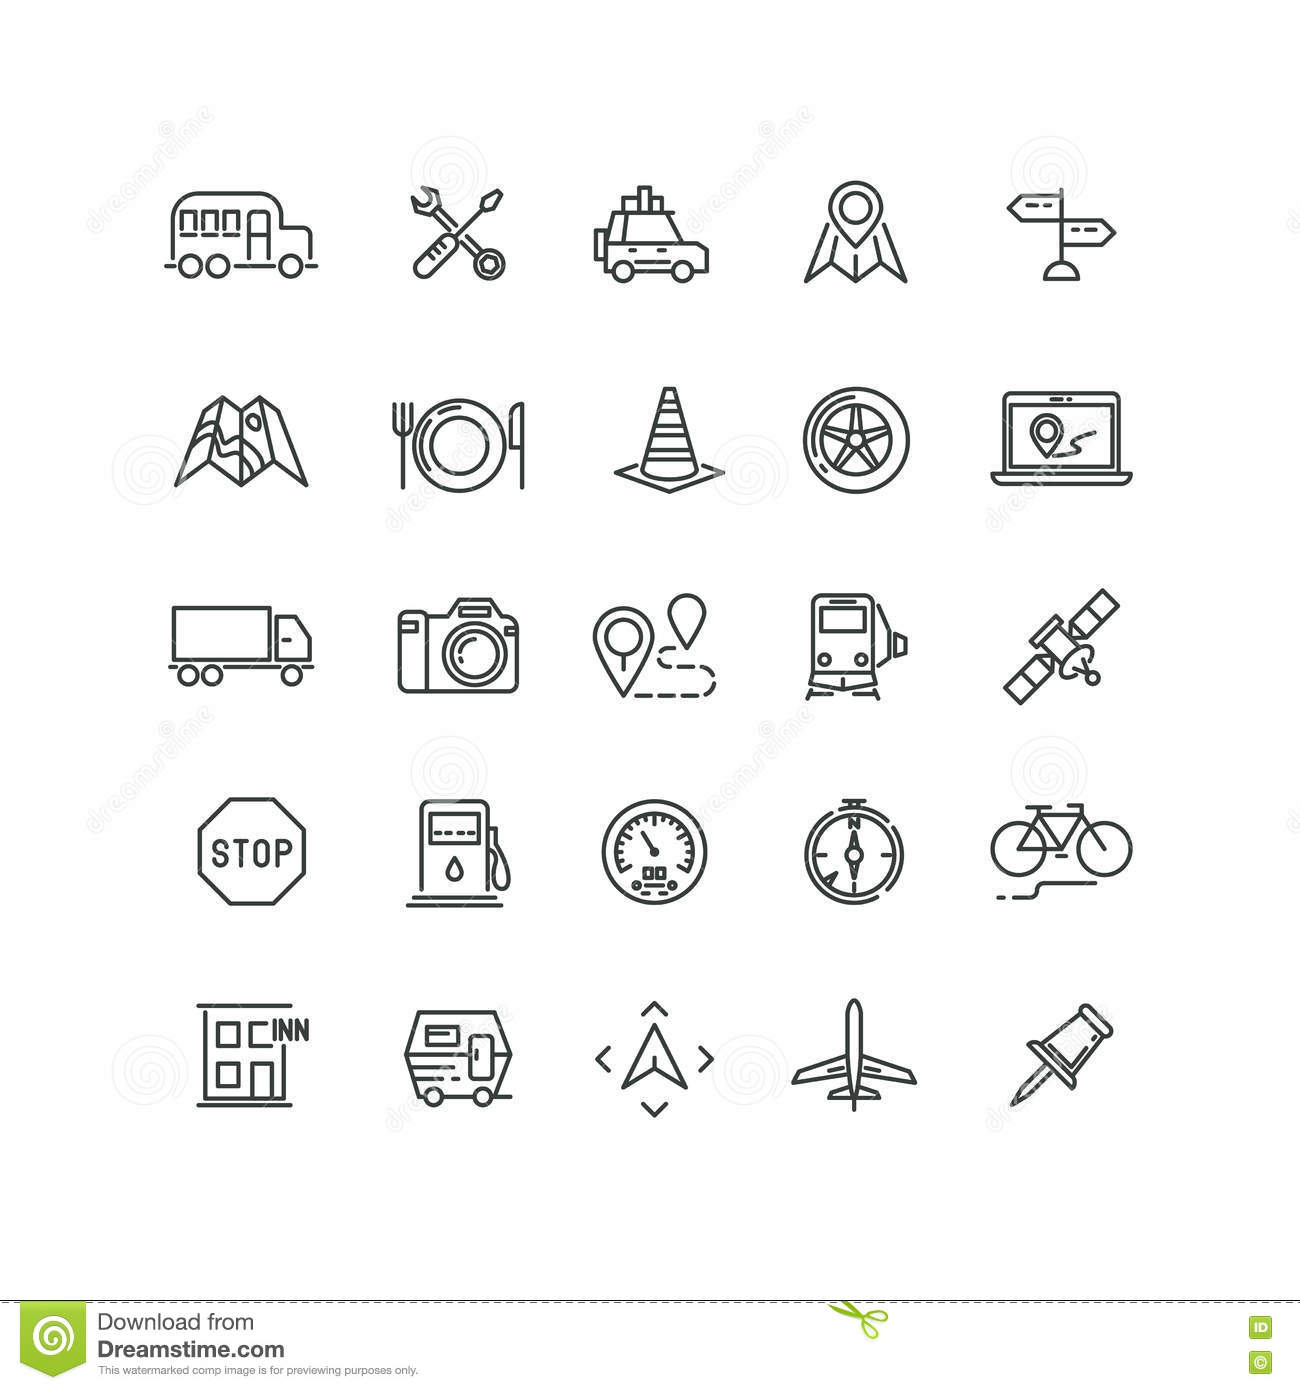 Travel Road Traffic And Location Vector Line Icons